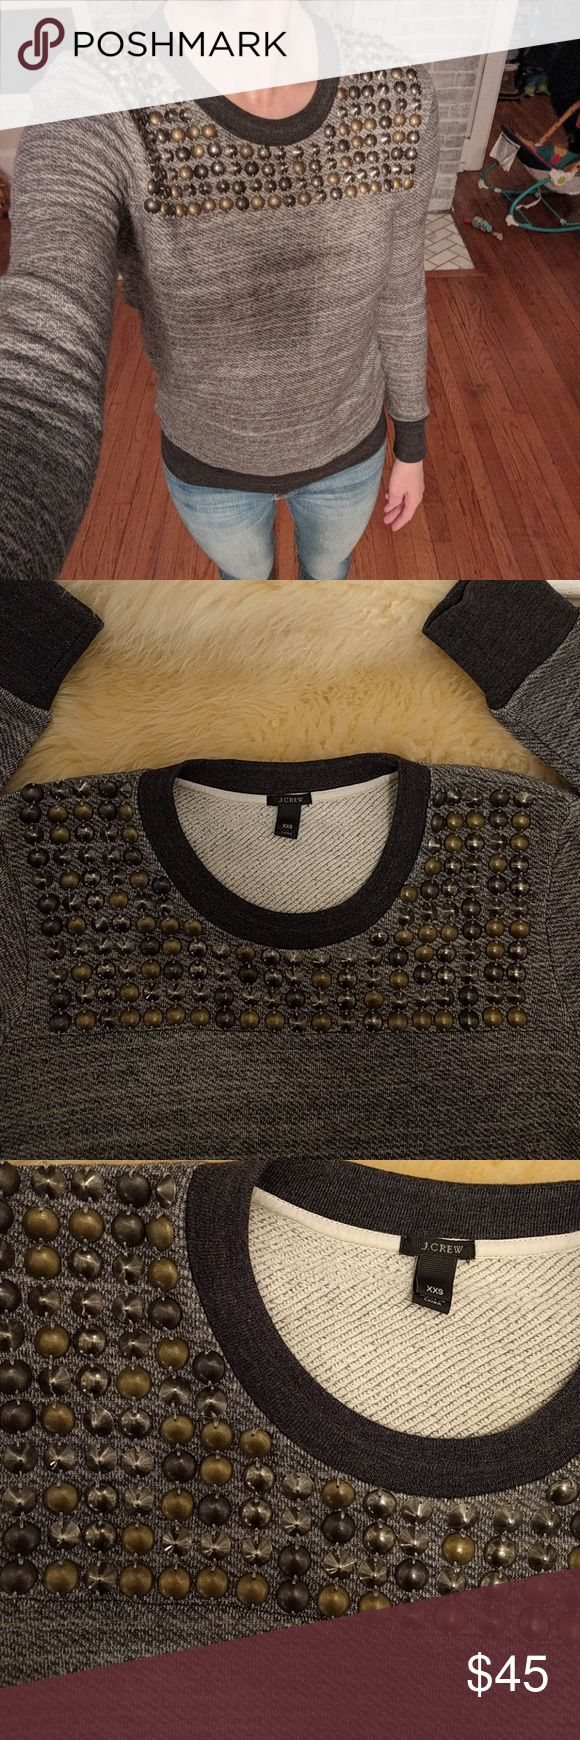 J.Crew studded sweater J.Crew studded sweater NWOT. Awesome rare find! Pet and smoke free home. Bundle to save 20%! J. Crew Sweaters Crew & Scoop Necks